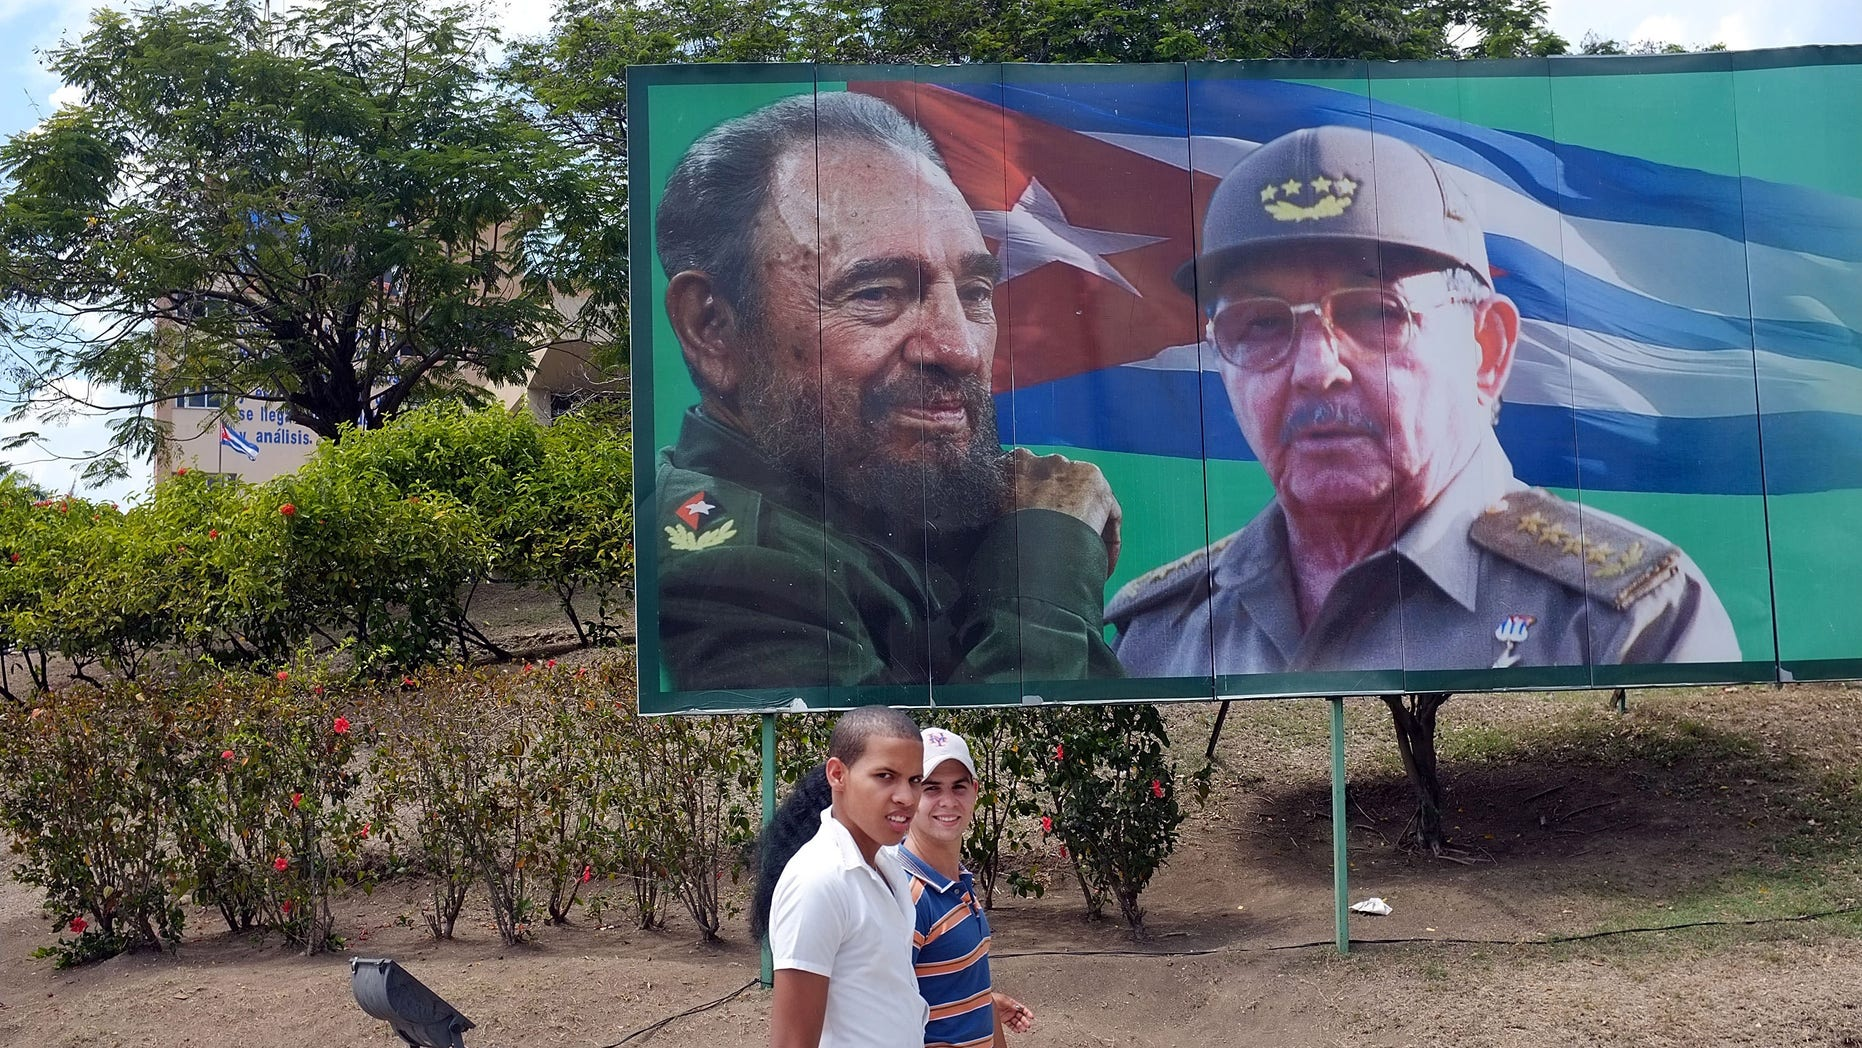 SANTIAGO DE CUBA, CUBA - MARCH 27:  Two teens walk by a billboard of Fidel and Raul Castro a day after Pope Benedict XVI held a historic mass in the city on March 27, 2012 in Santiago de Cuba. Fourteen years after Pope John Paul II visited Cuba, Pope Benedict is making his first trip to the communist country. Benedict, who arrived from Mexico, conducted a mass in the city of Santiago de Cuba first followed by a mass in Havana before leaving on the 28th. Tensions are high in Cuba between dissidents and the government as activists hope the international exposure of the Papal visit will result in renewed attention to their struggle for greater freedoms.  (Photo by Spencer Platt/Getty Images)